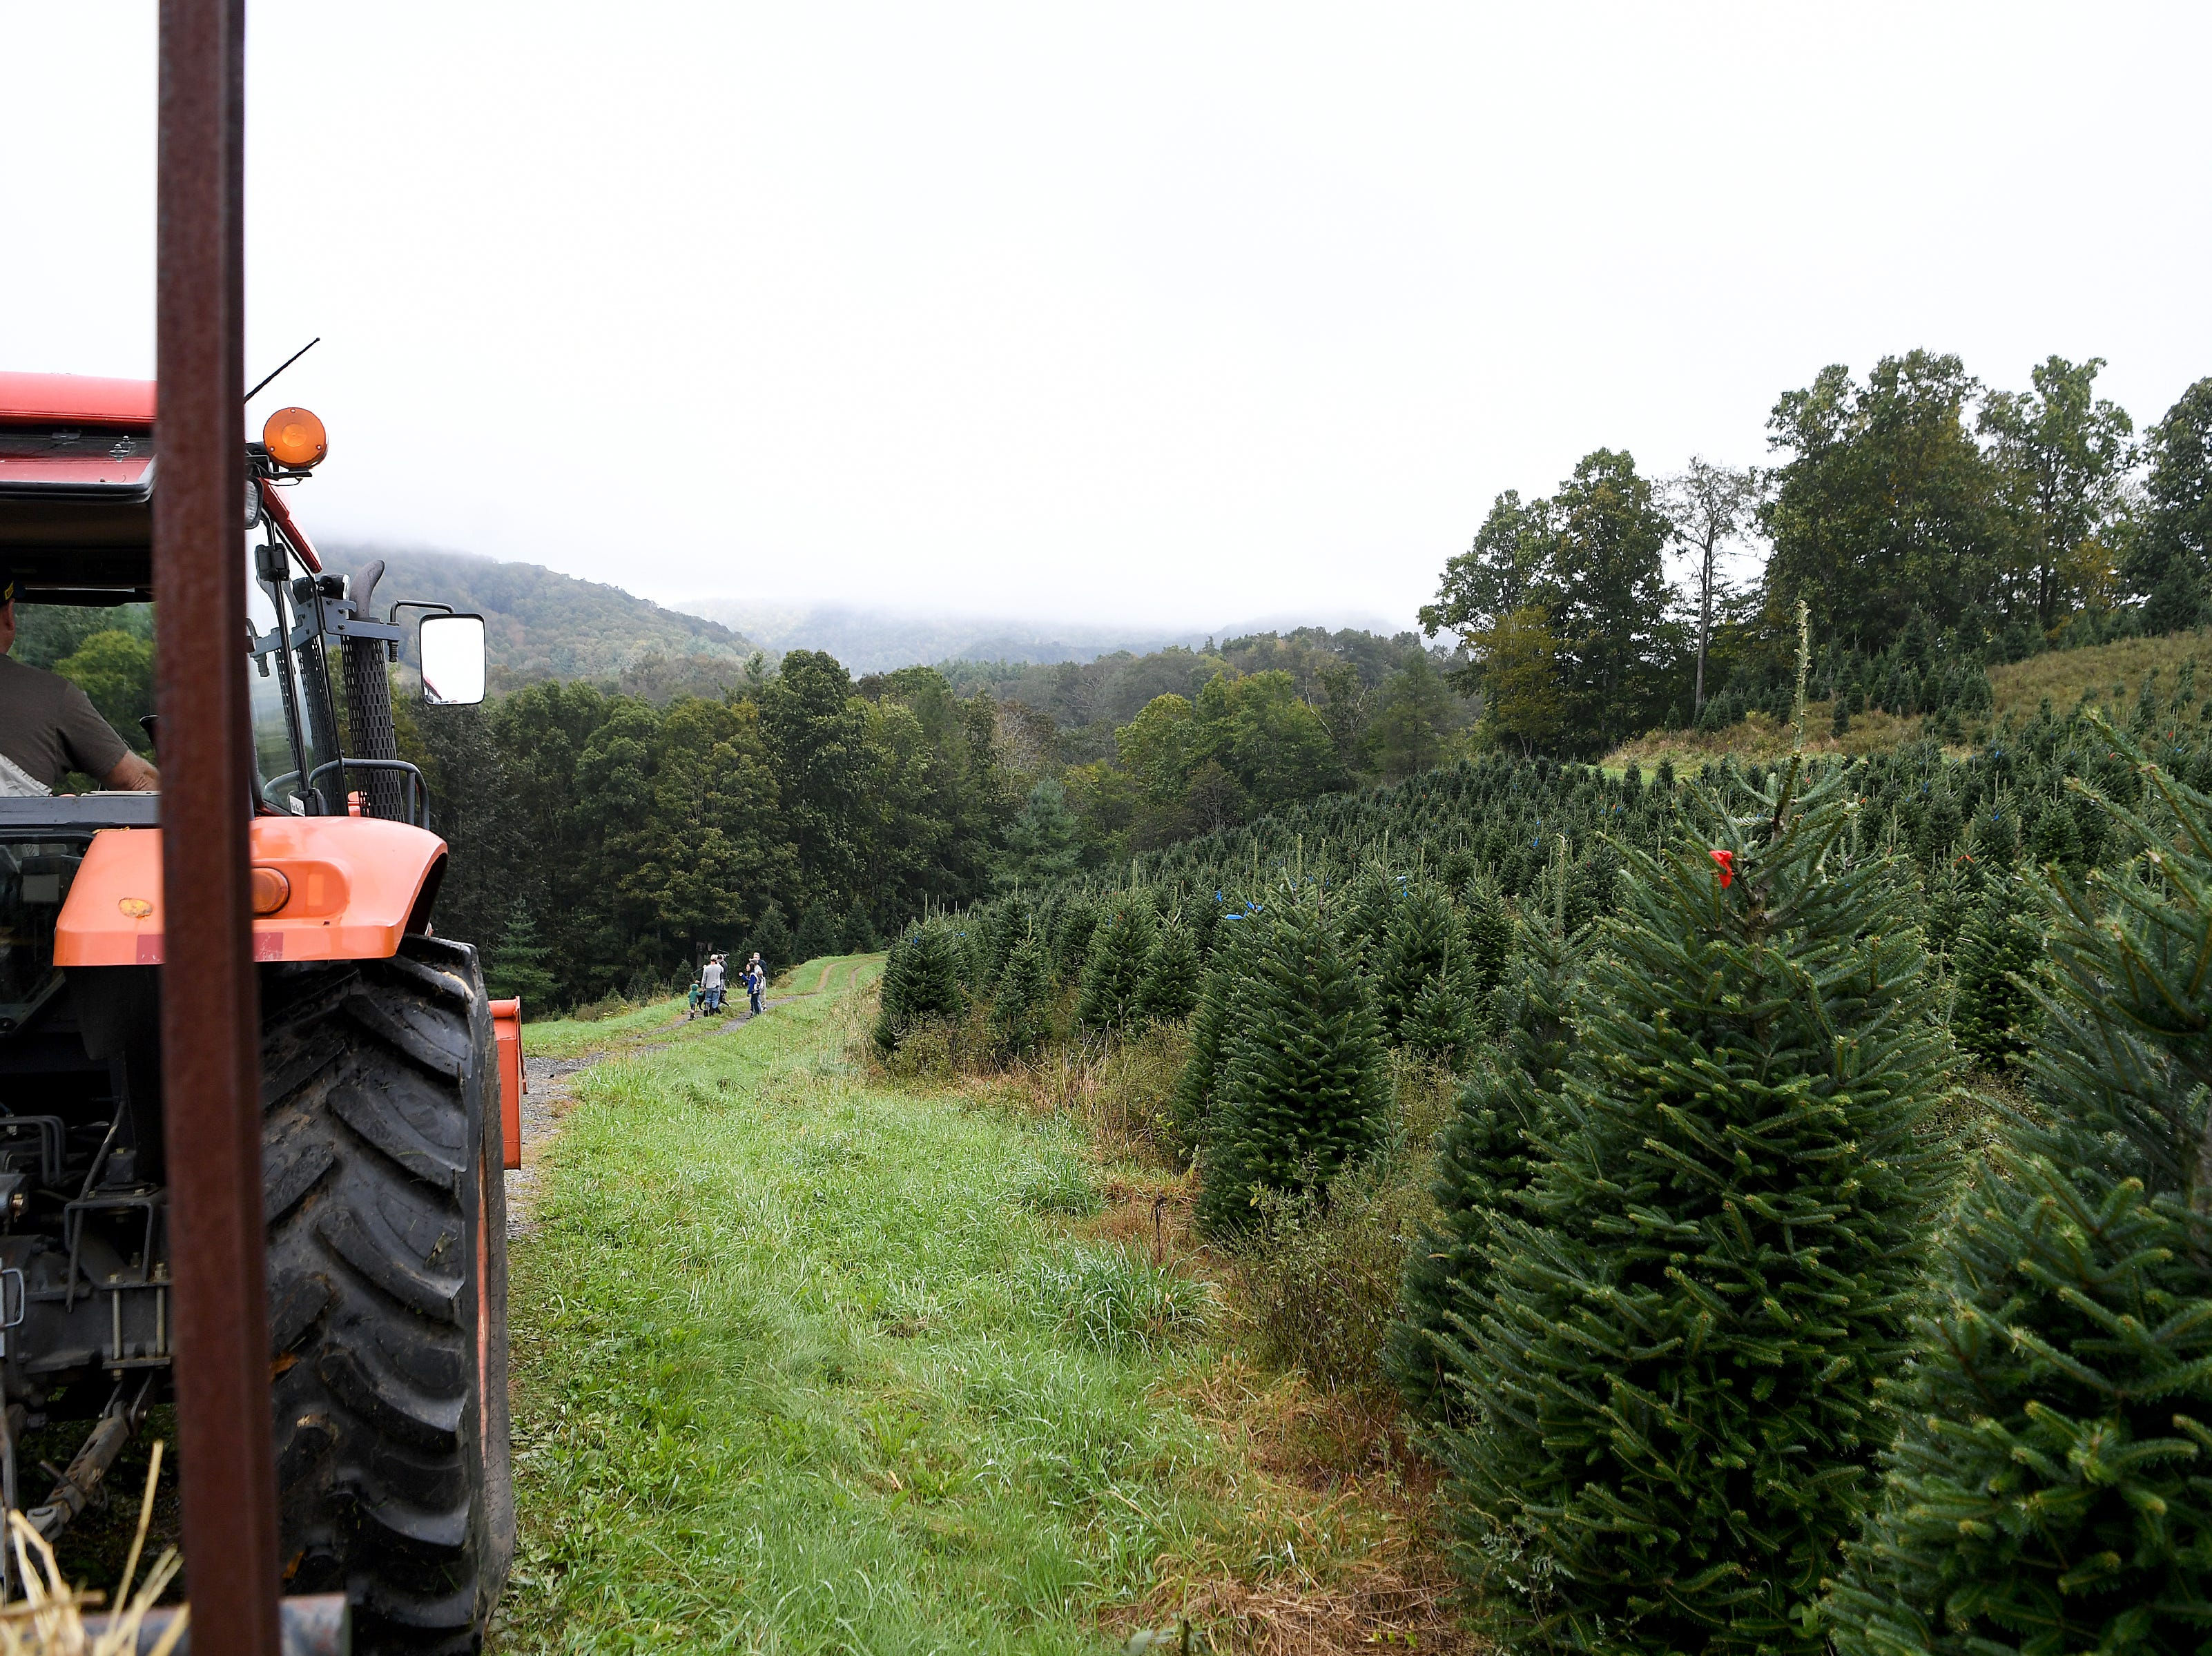 Members of the media are led through Mountain Top Fraser Fir, a Christmas tree farm in Newland, to watch White House officials pick out a tree for the Blue Room of the White House.